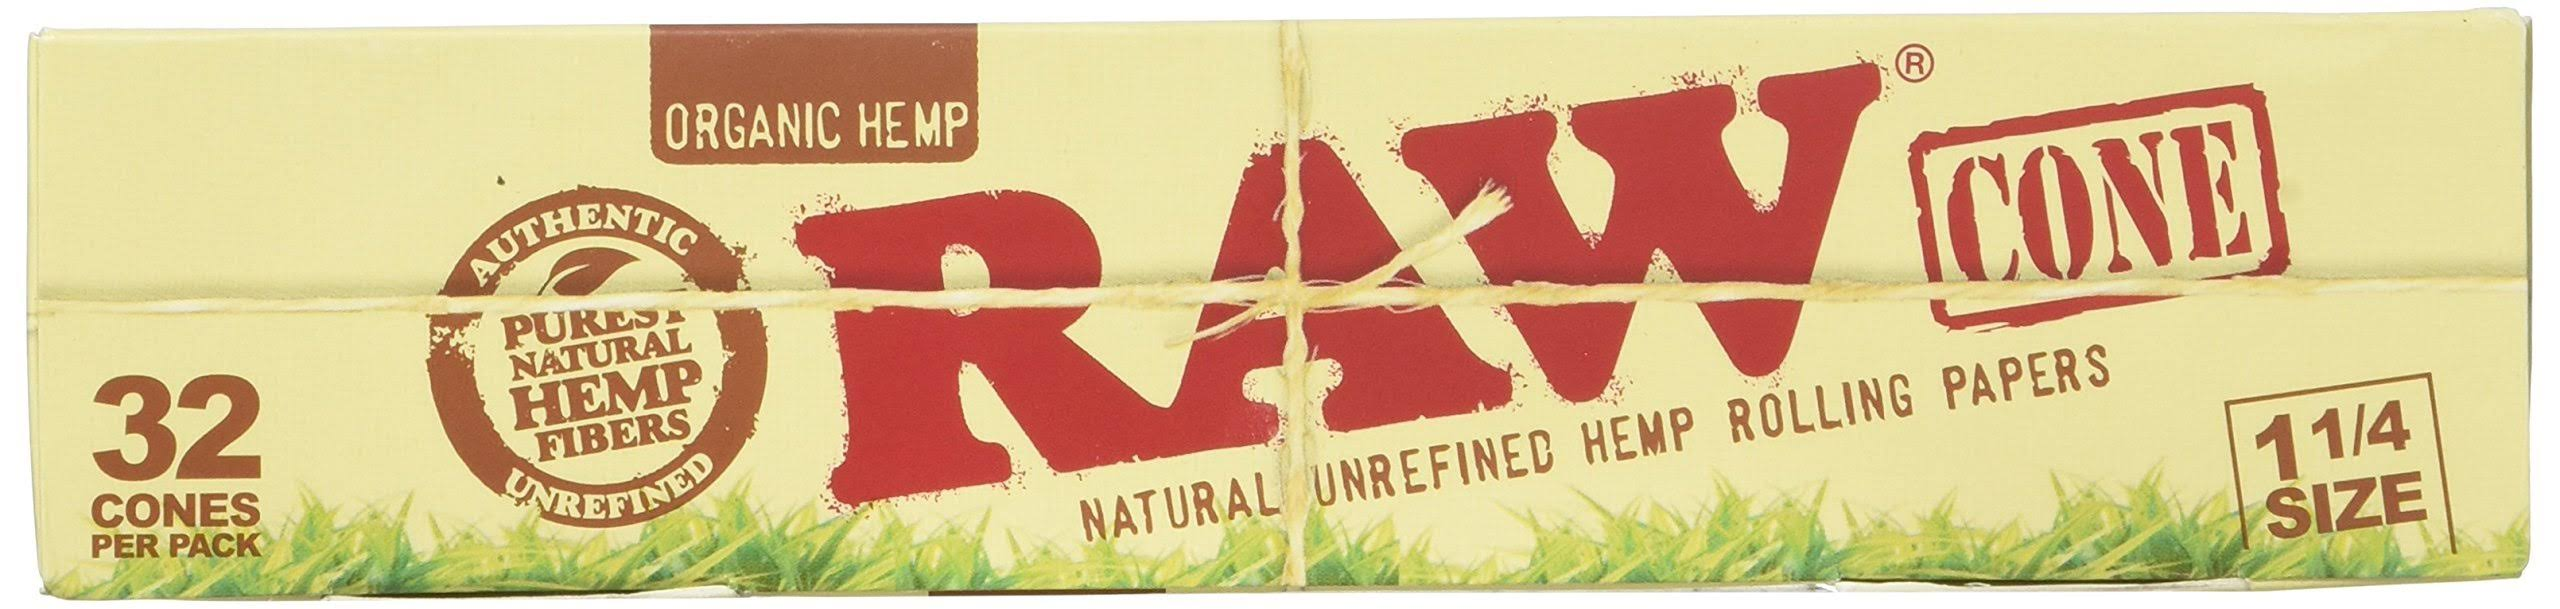 RAW Organic Unrefined Pre-Rolled Cone - 1-1/4 Size, x32